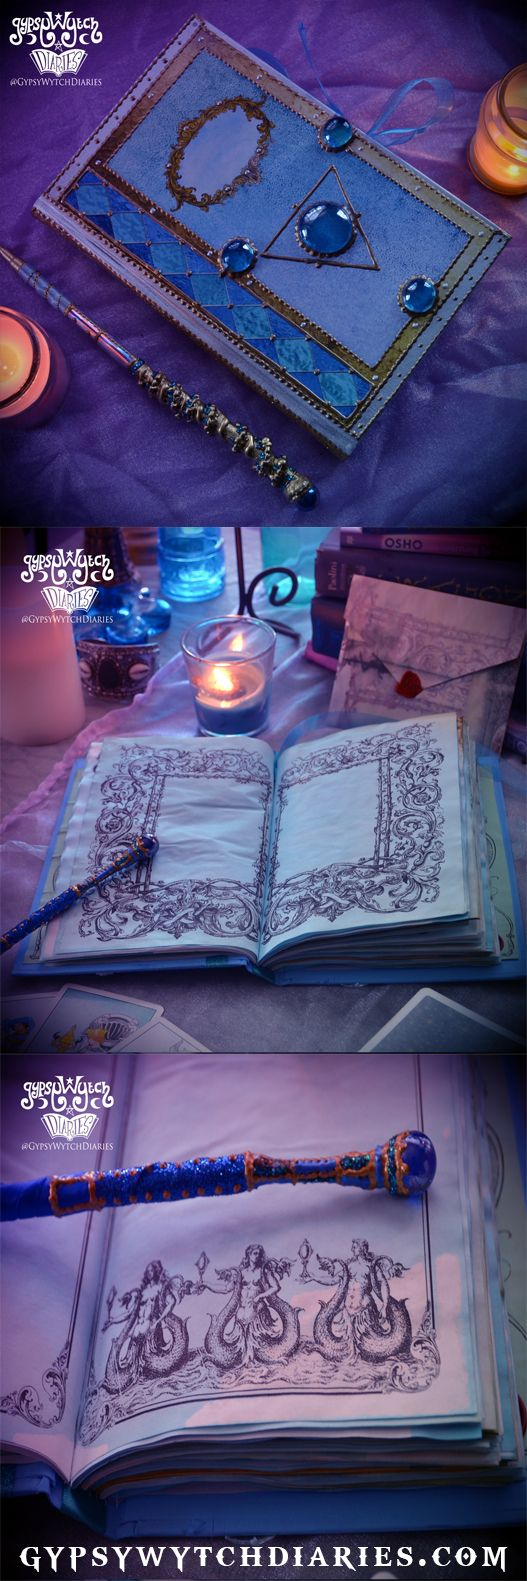 Water Element Book Of Shadows From Gypsywytch Diaries By Oddsoul Designs ·  Water Witchsea